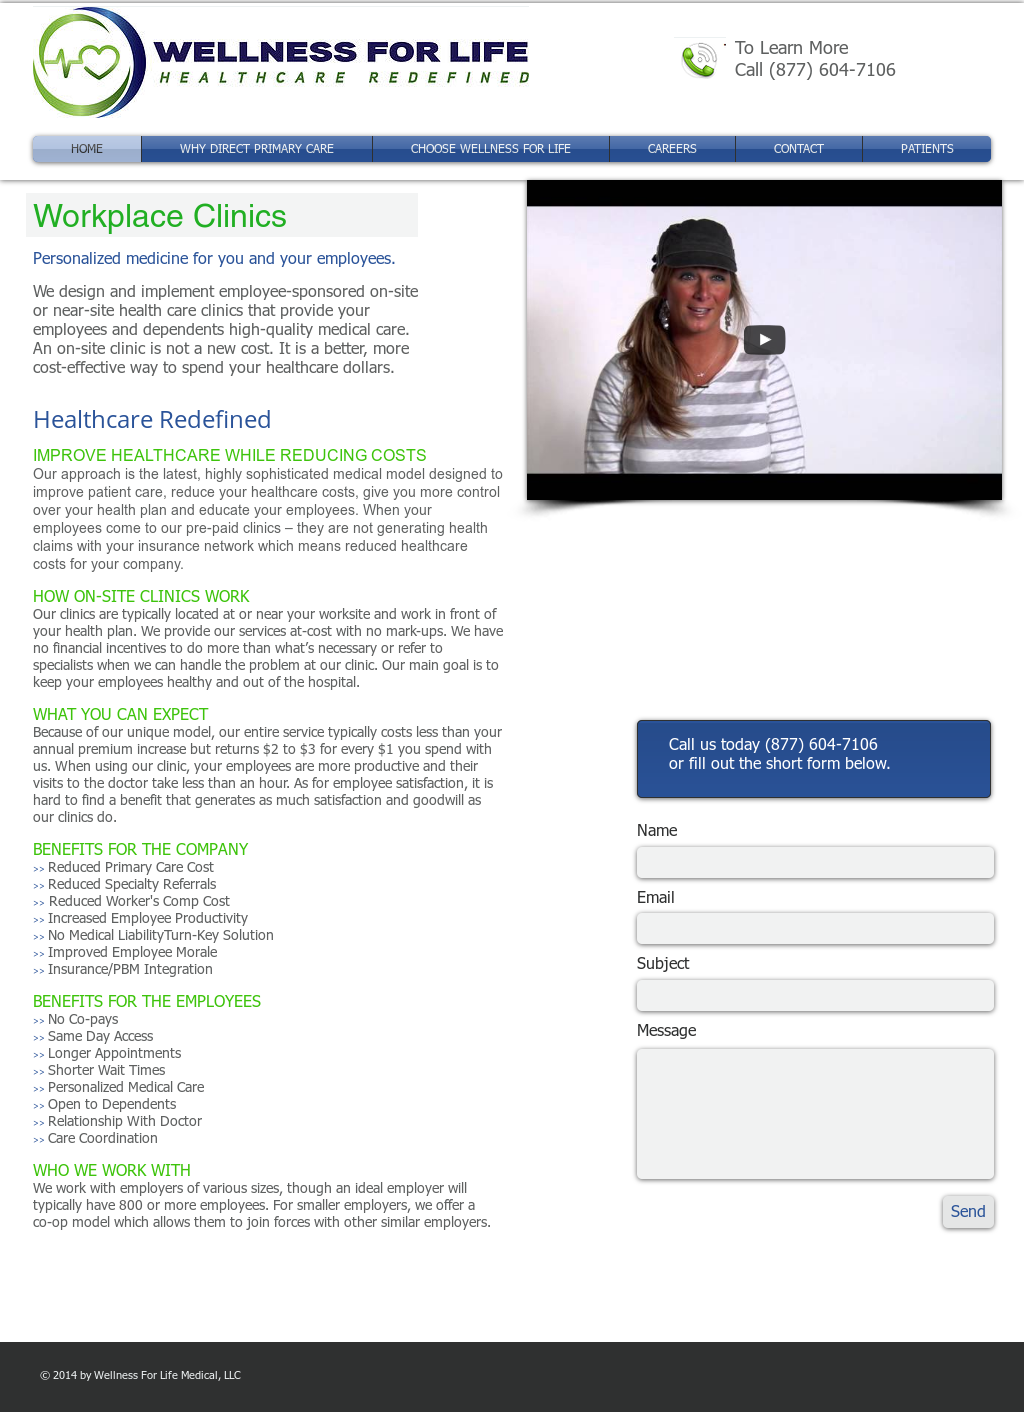 Wellness For Life Competitors, Revenue and Employees - Owler